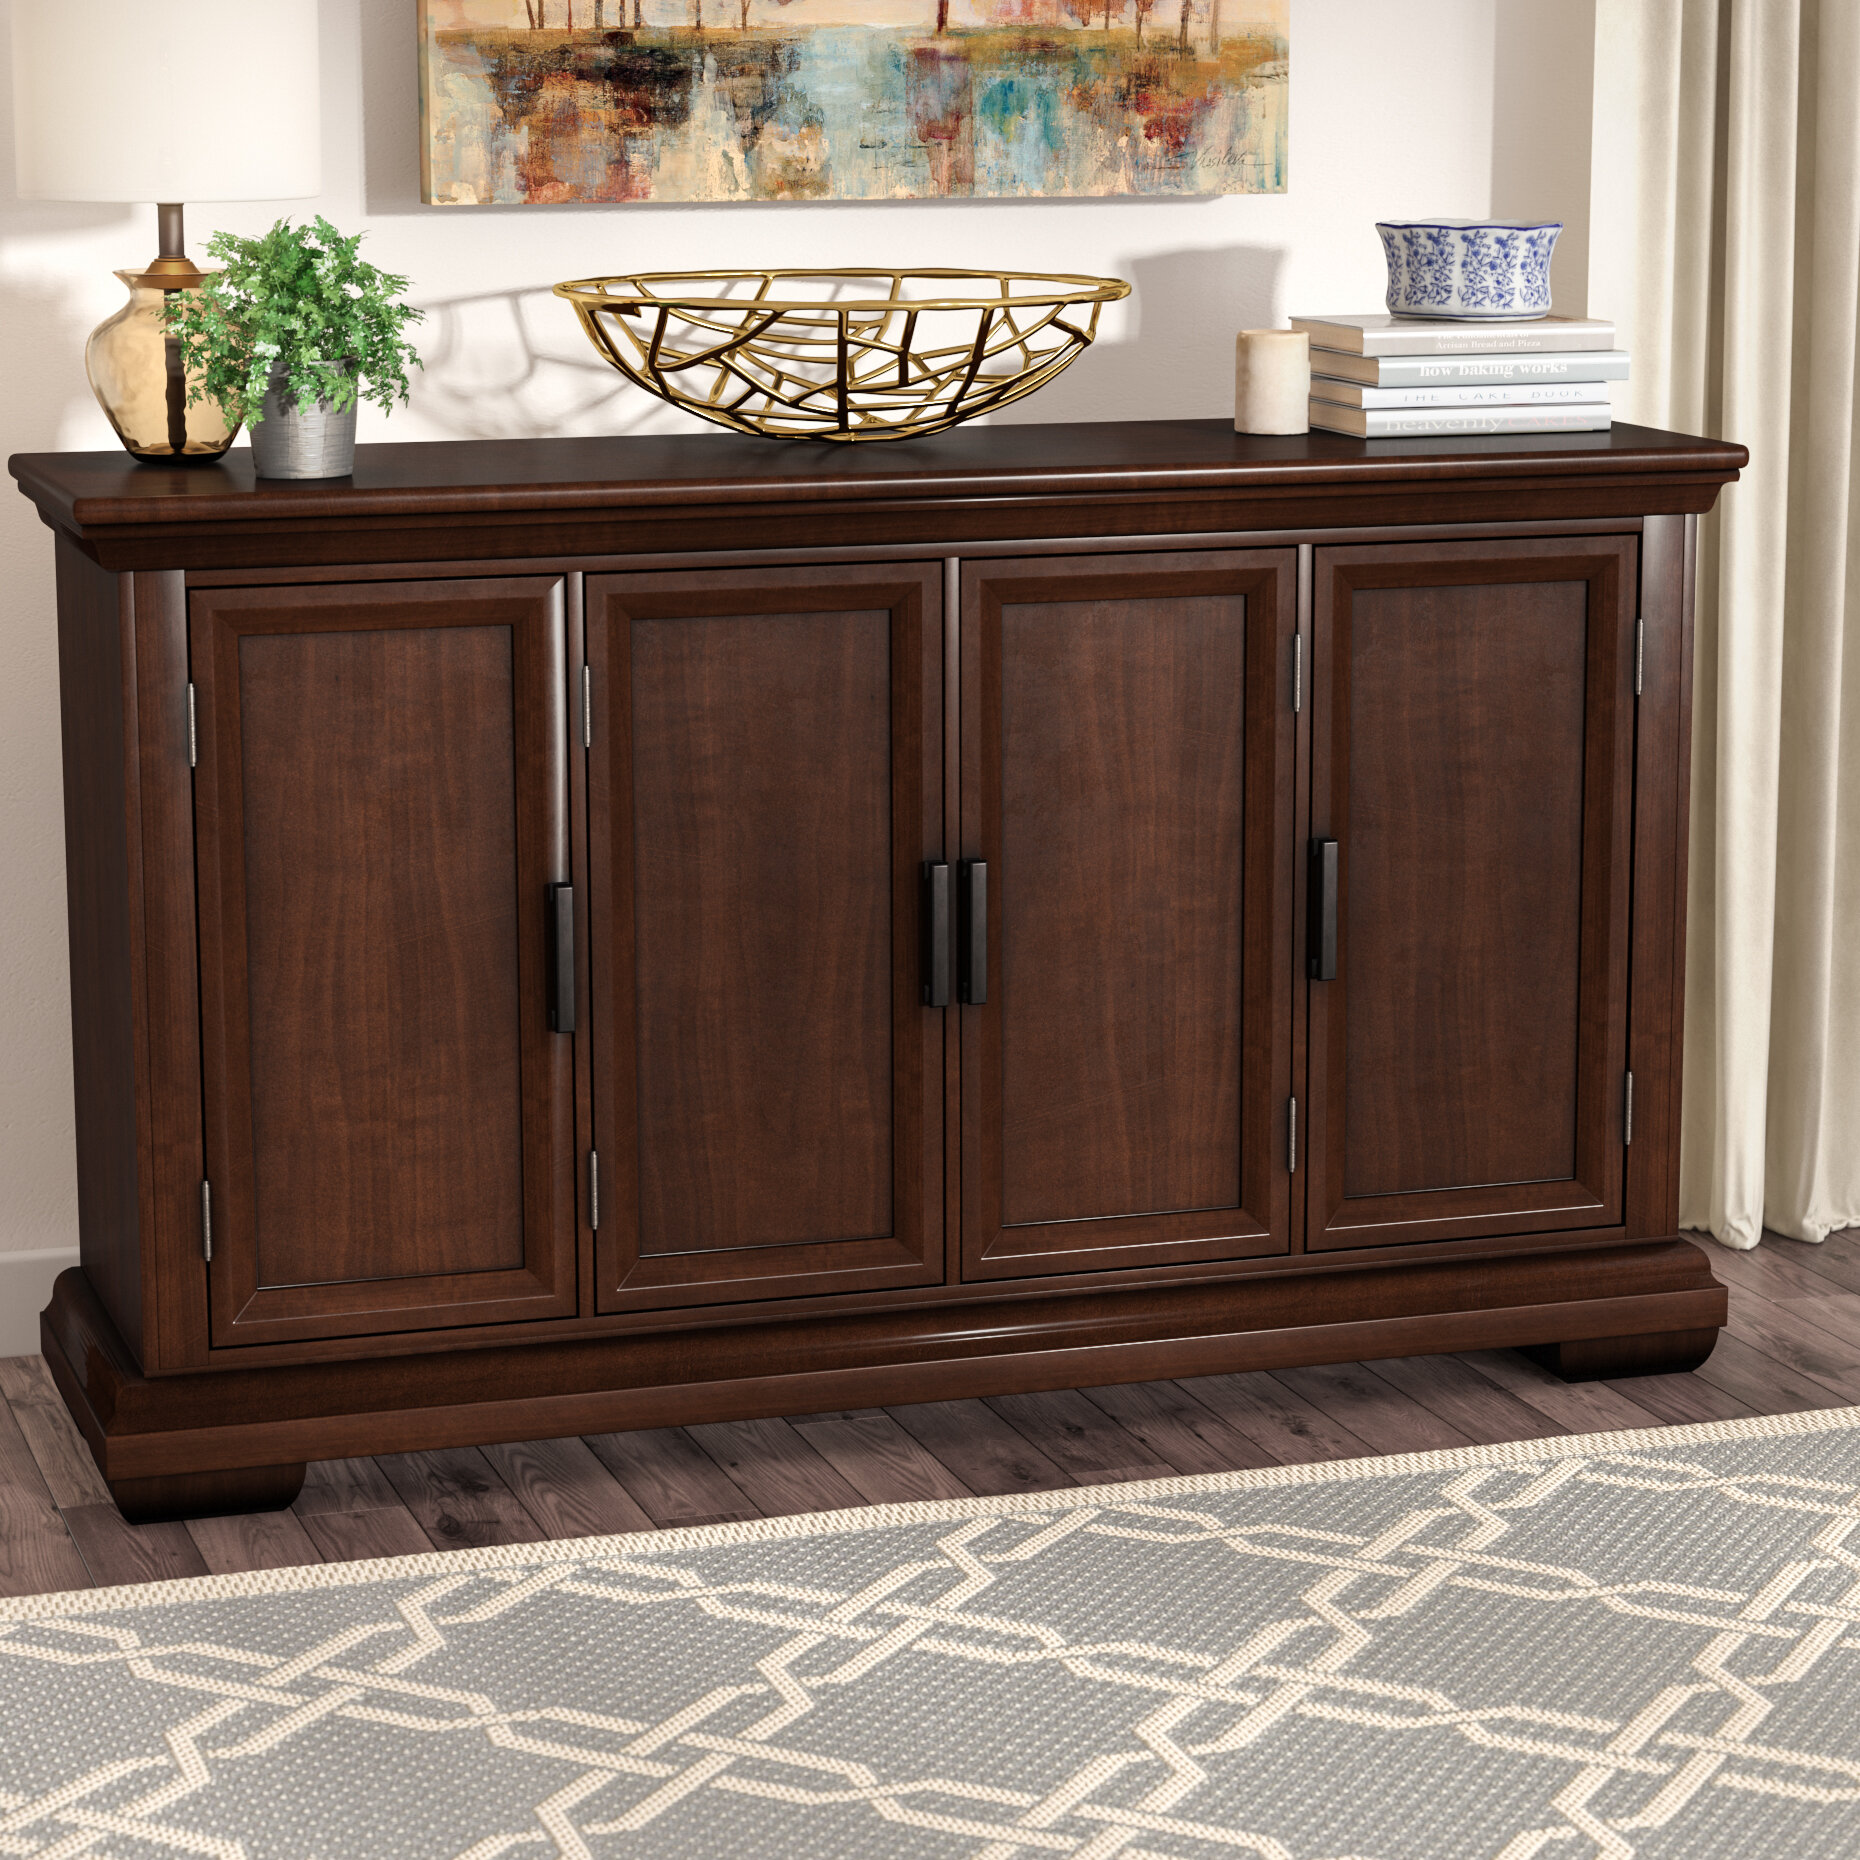 Narrow Dining Room Sideboards | Wayfair